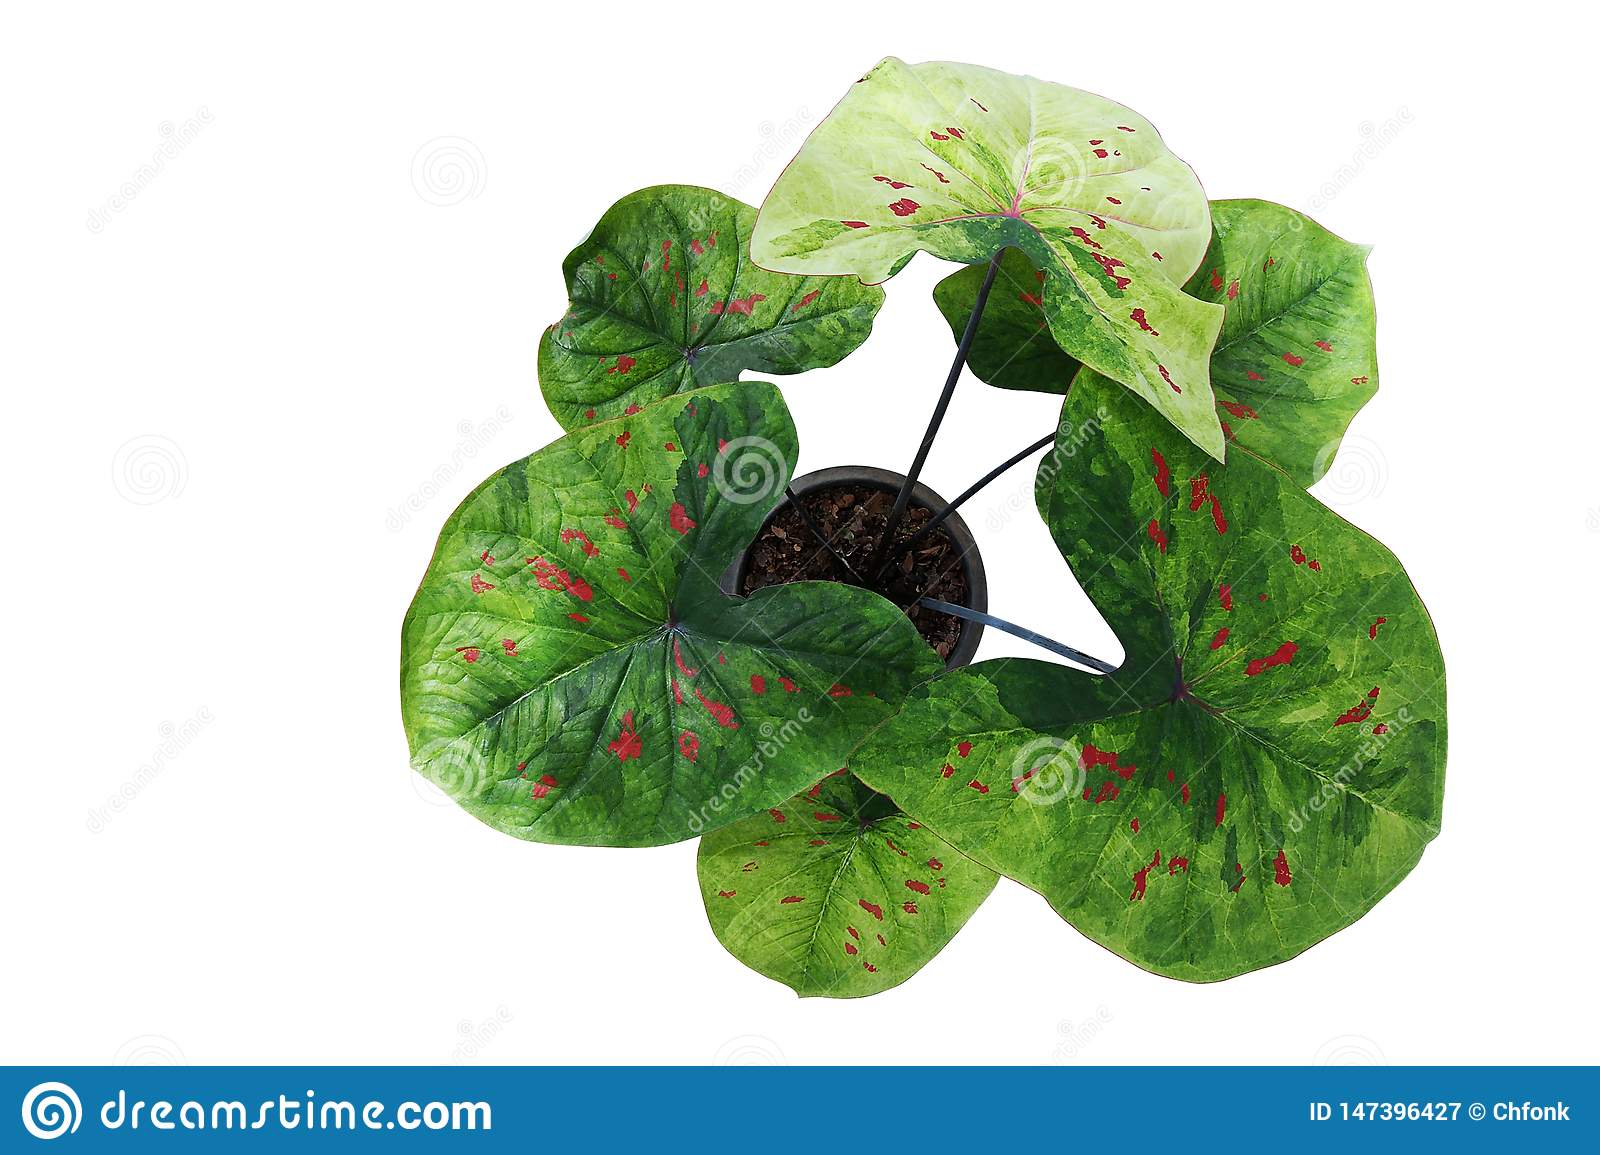 Top View Of Fancy Leaf Caladium Potted Plant Heart Shaped